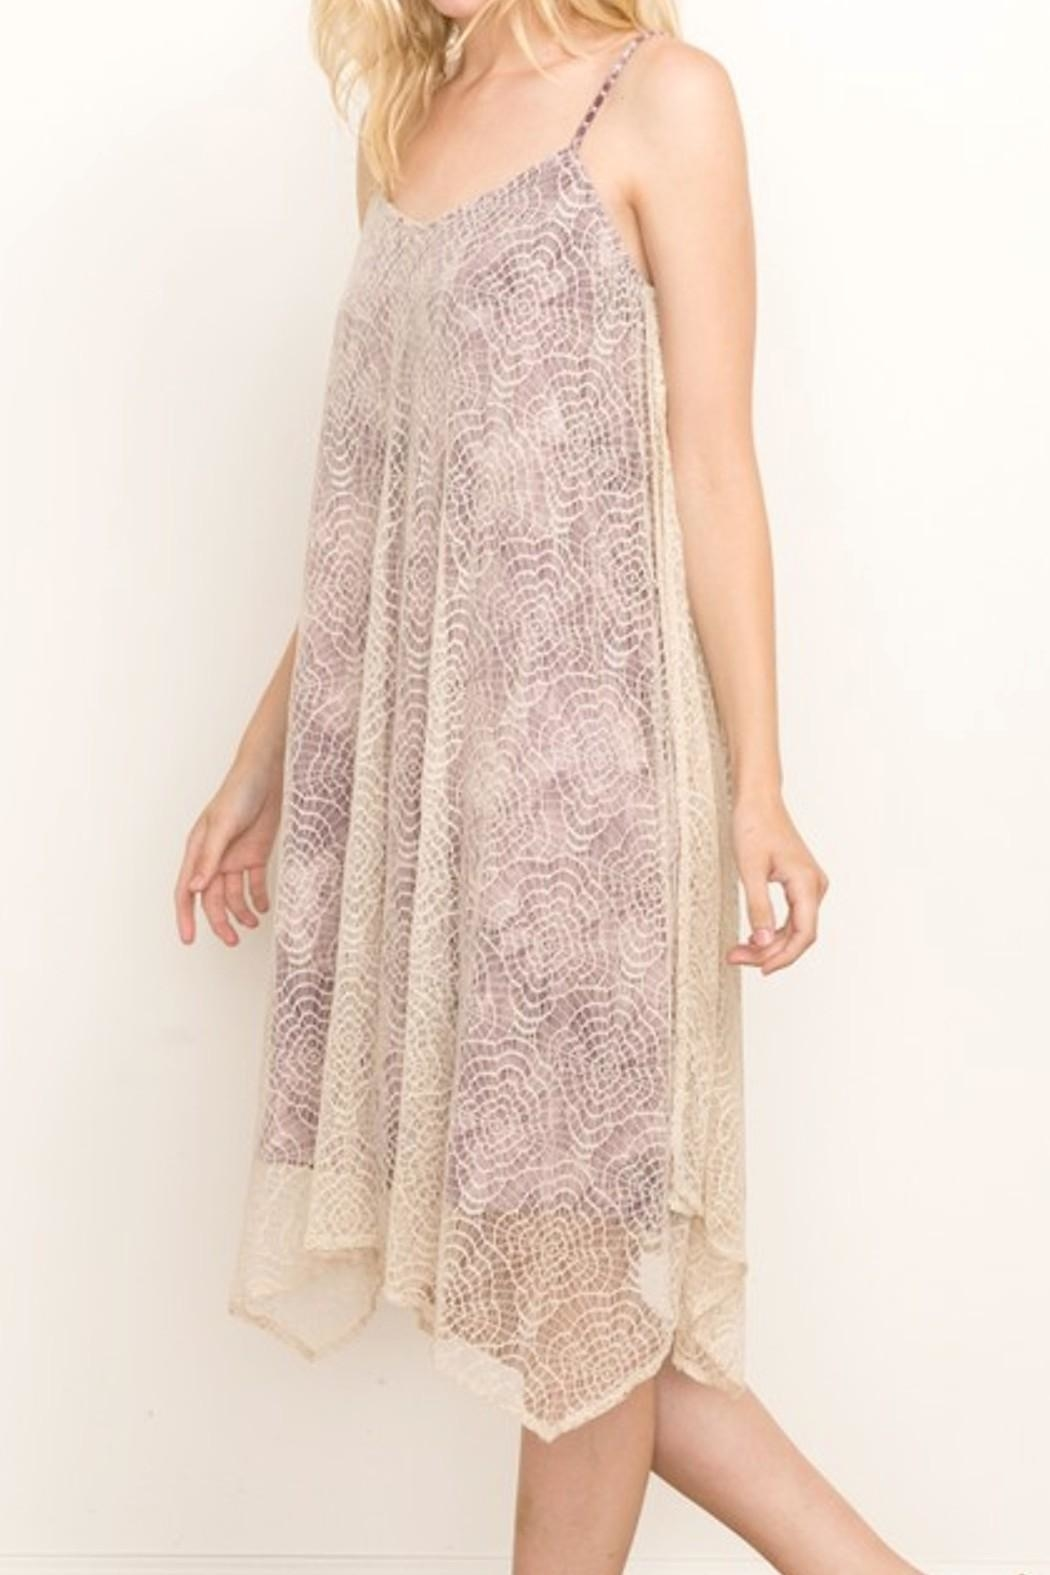 Mystree Violet Lace Cami-Dress - Front Full Image